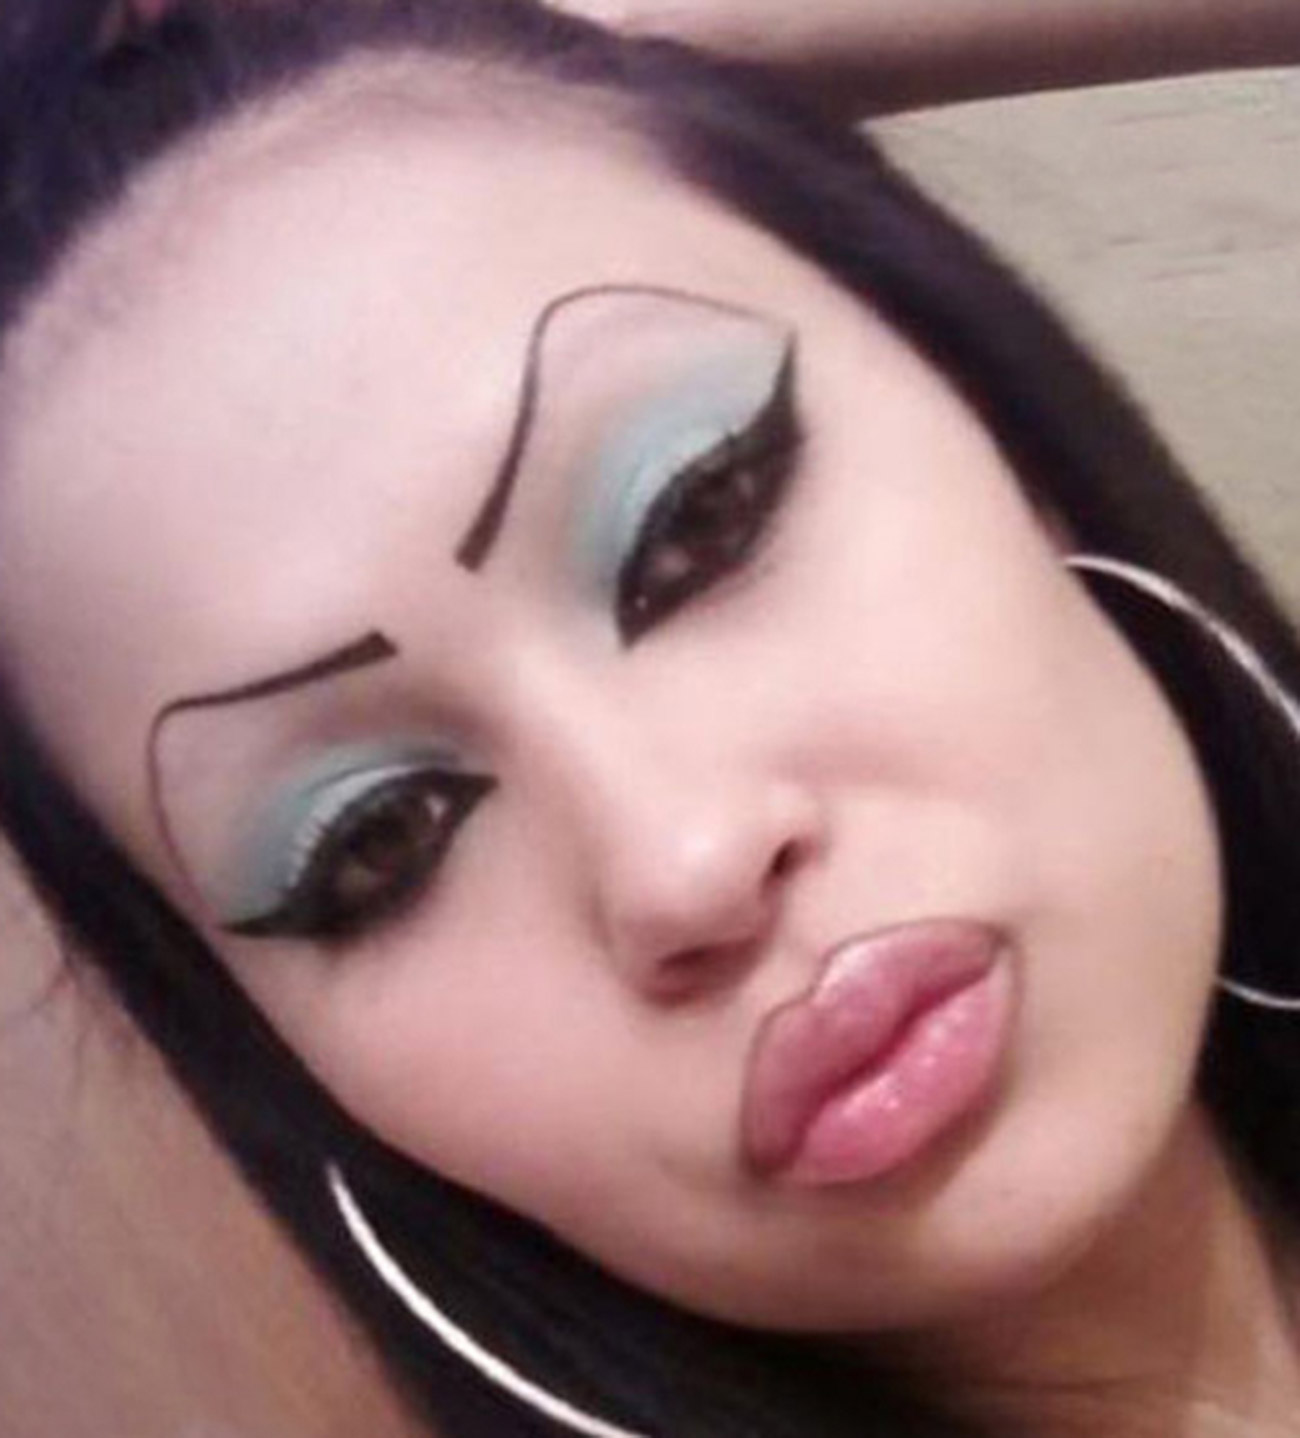 8-Signs-Your-Eyebrow-Game-is-Way-Too-Strong_p5.jpg